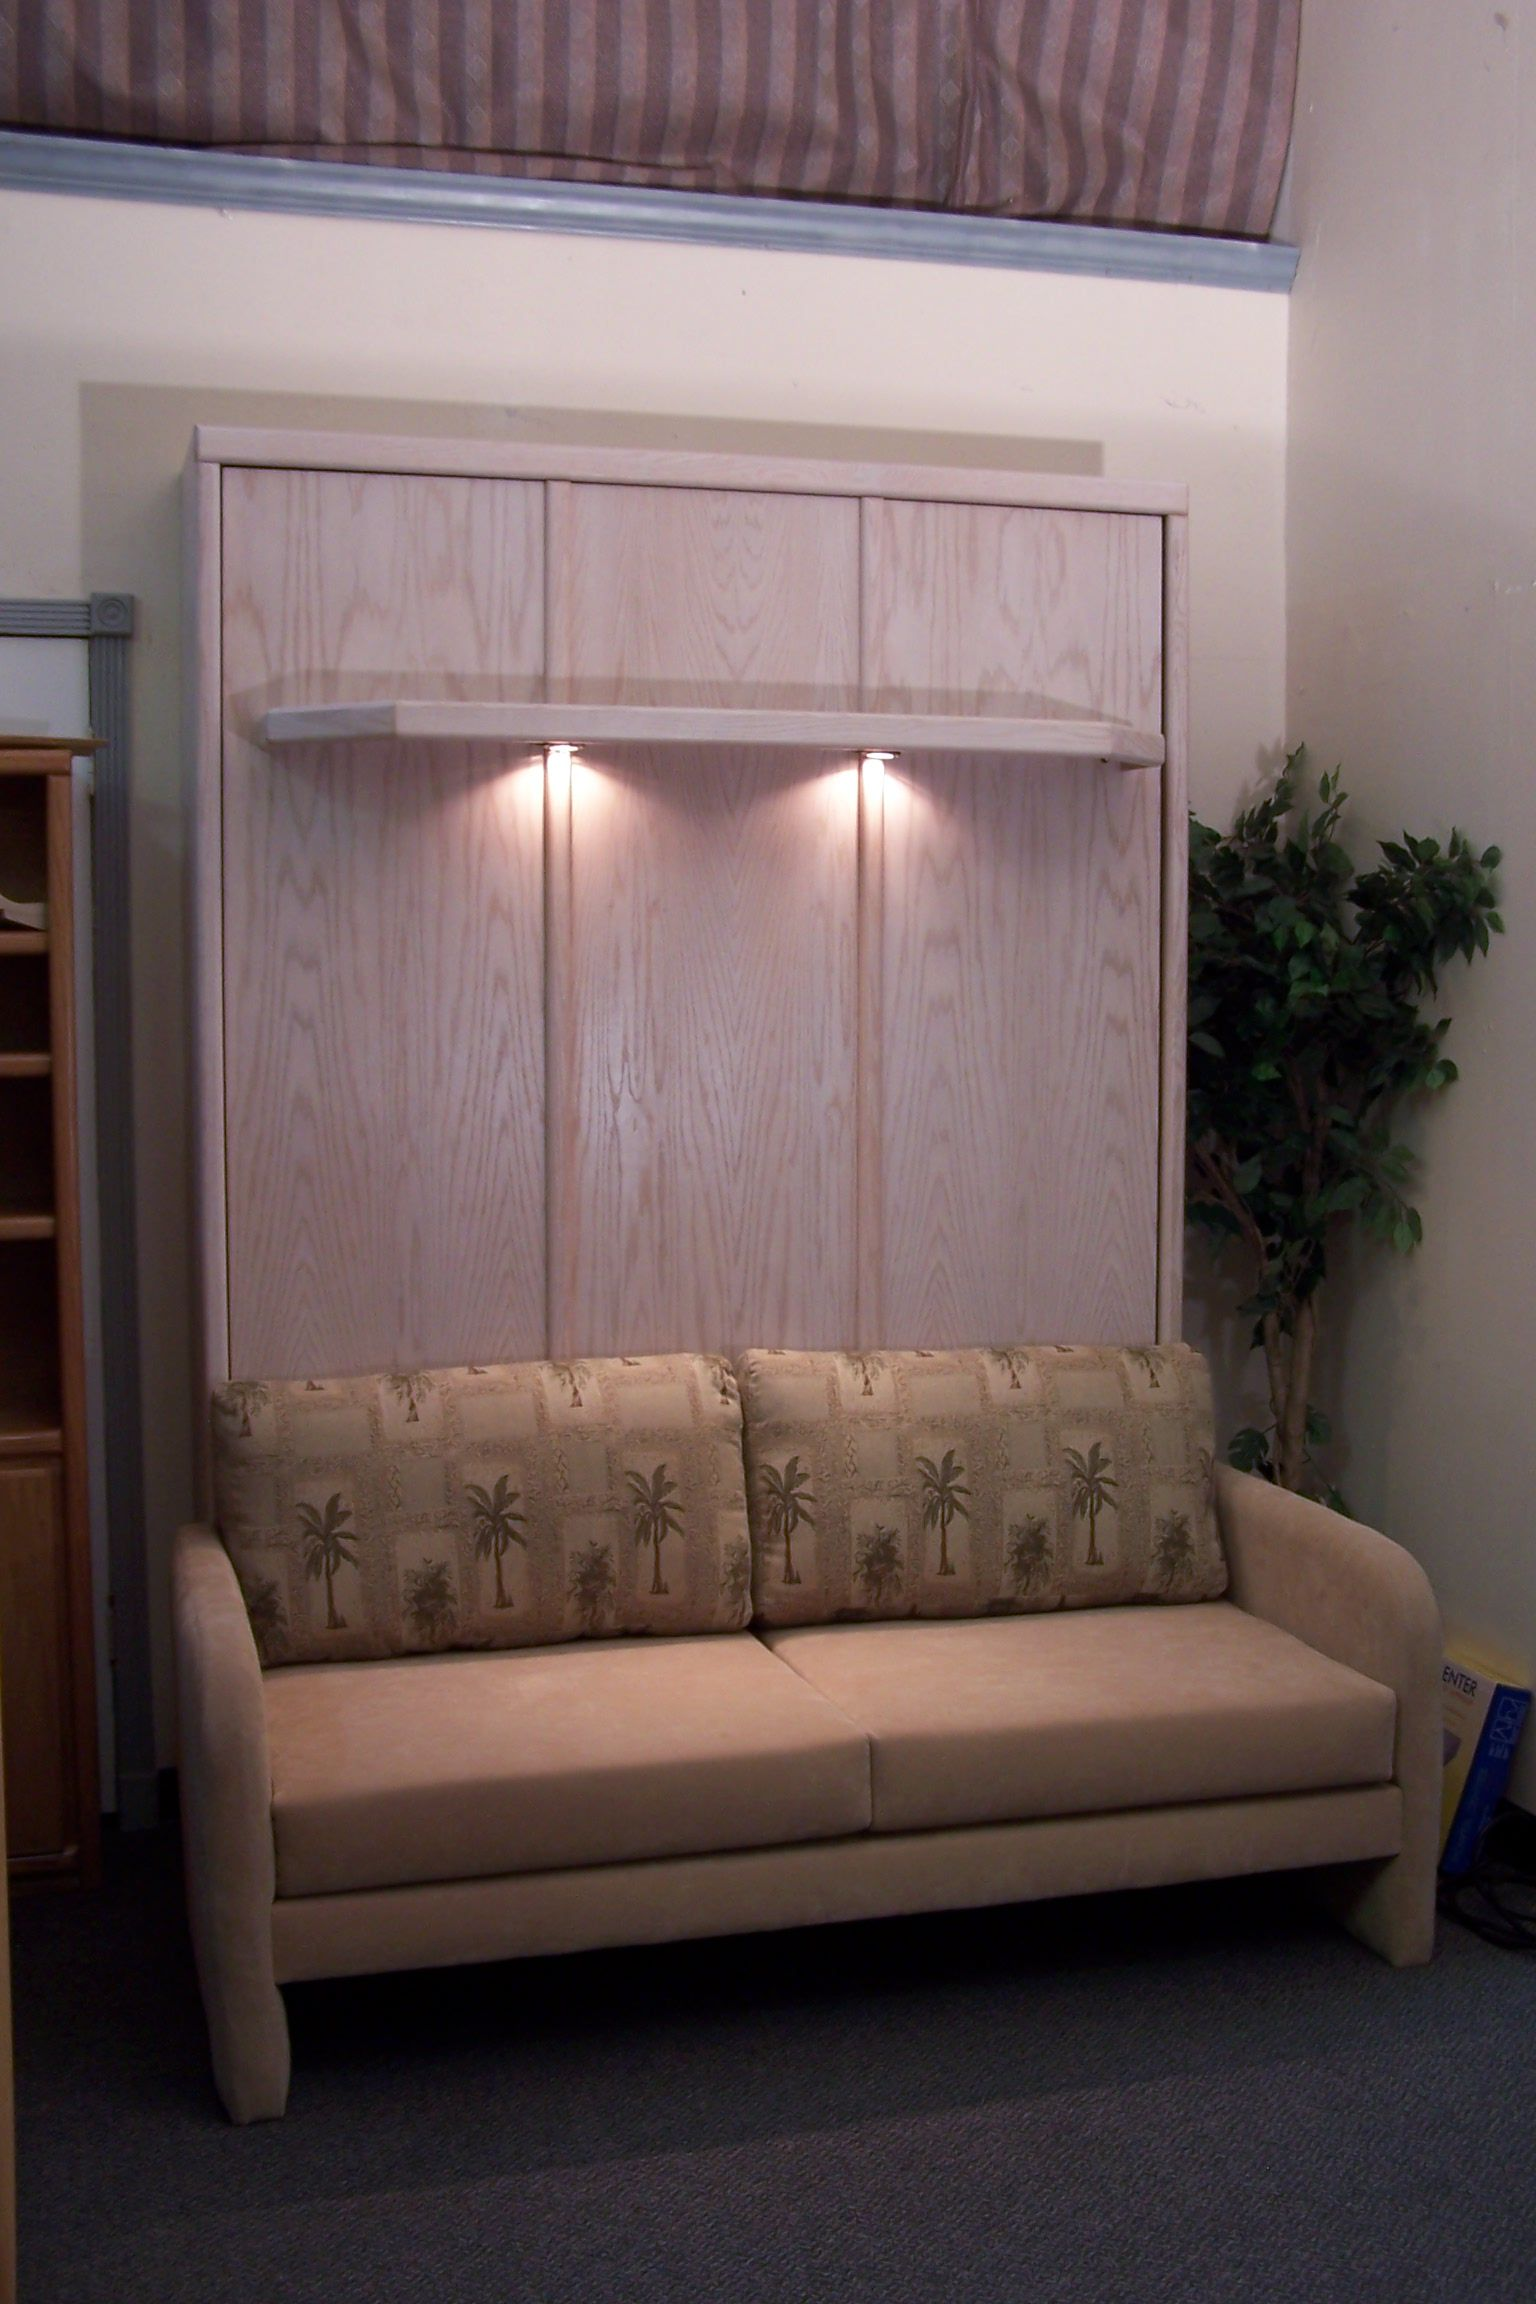 inline kit is sofa wayfair and bedroom twin wall contemporary what murphy bed modern a combo full of queen size beds horizontal ikea couch